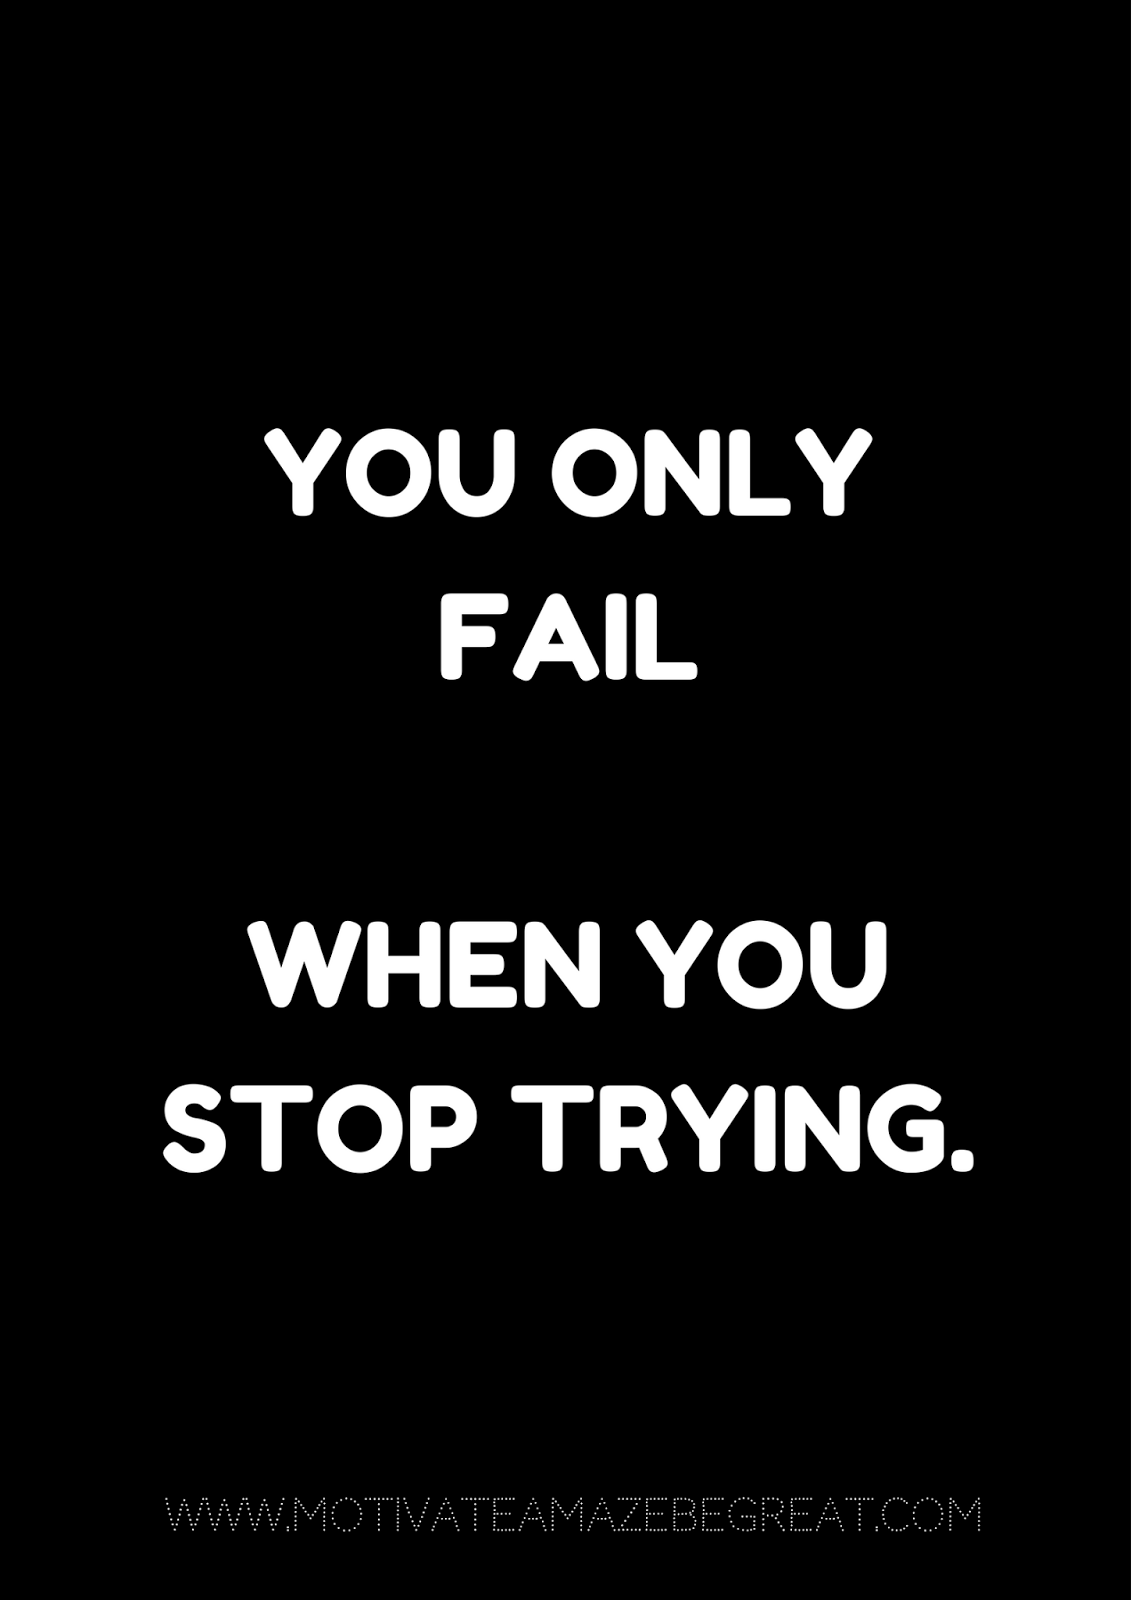 27 Self Motivation Quotes And Posters For Success - Motivate ...